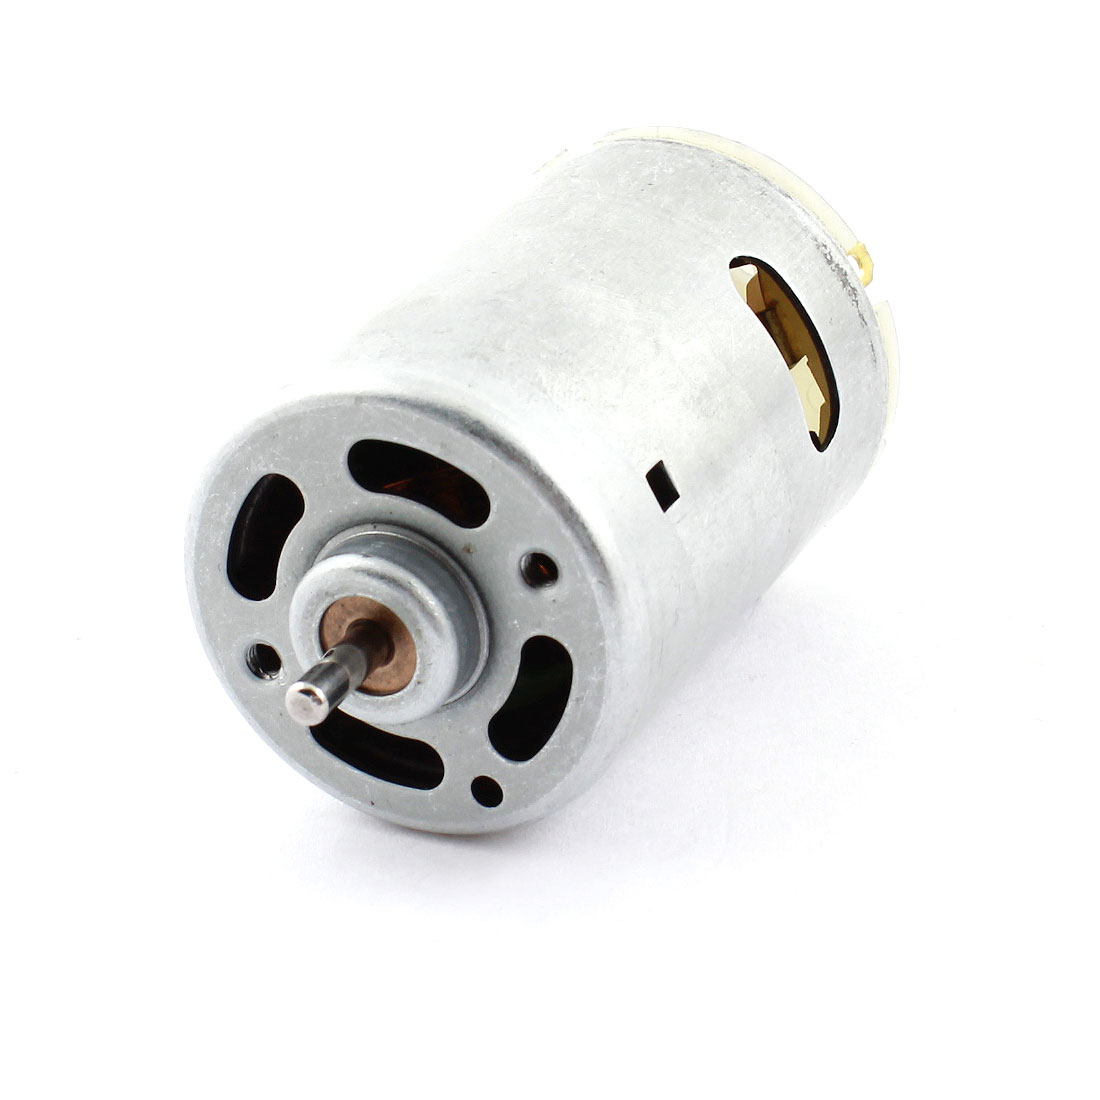 12V 27500RPM Metal Shell Electric Tool Spare Parts DC Motor